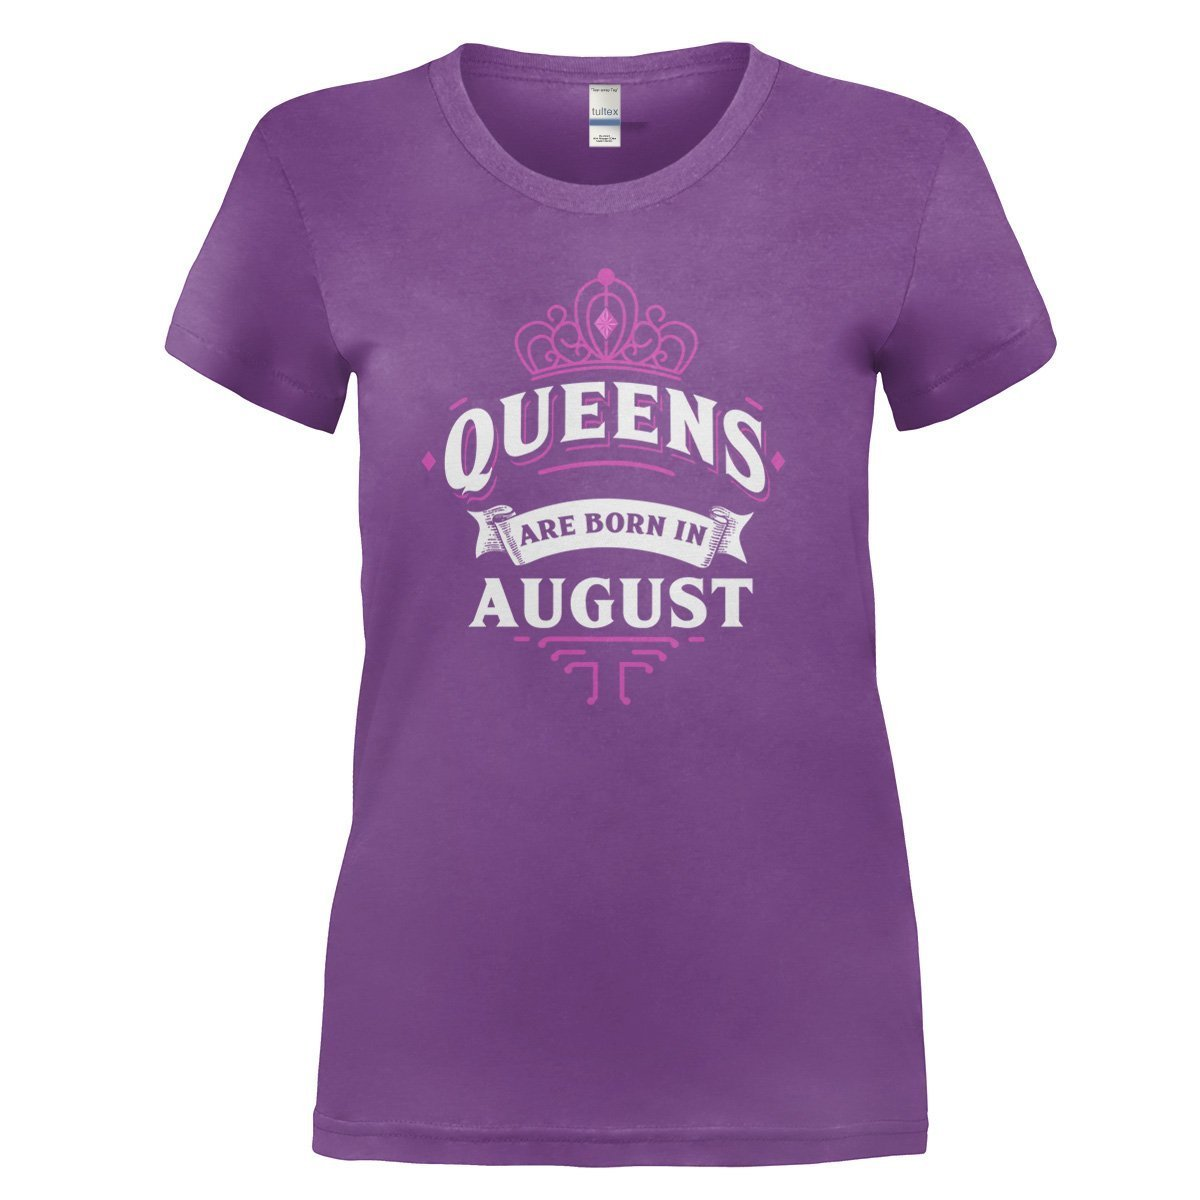 edee4ad5a Queens Are Born In August - T Shirt - I Love Apparel